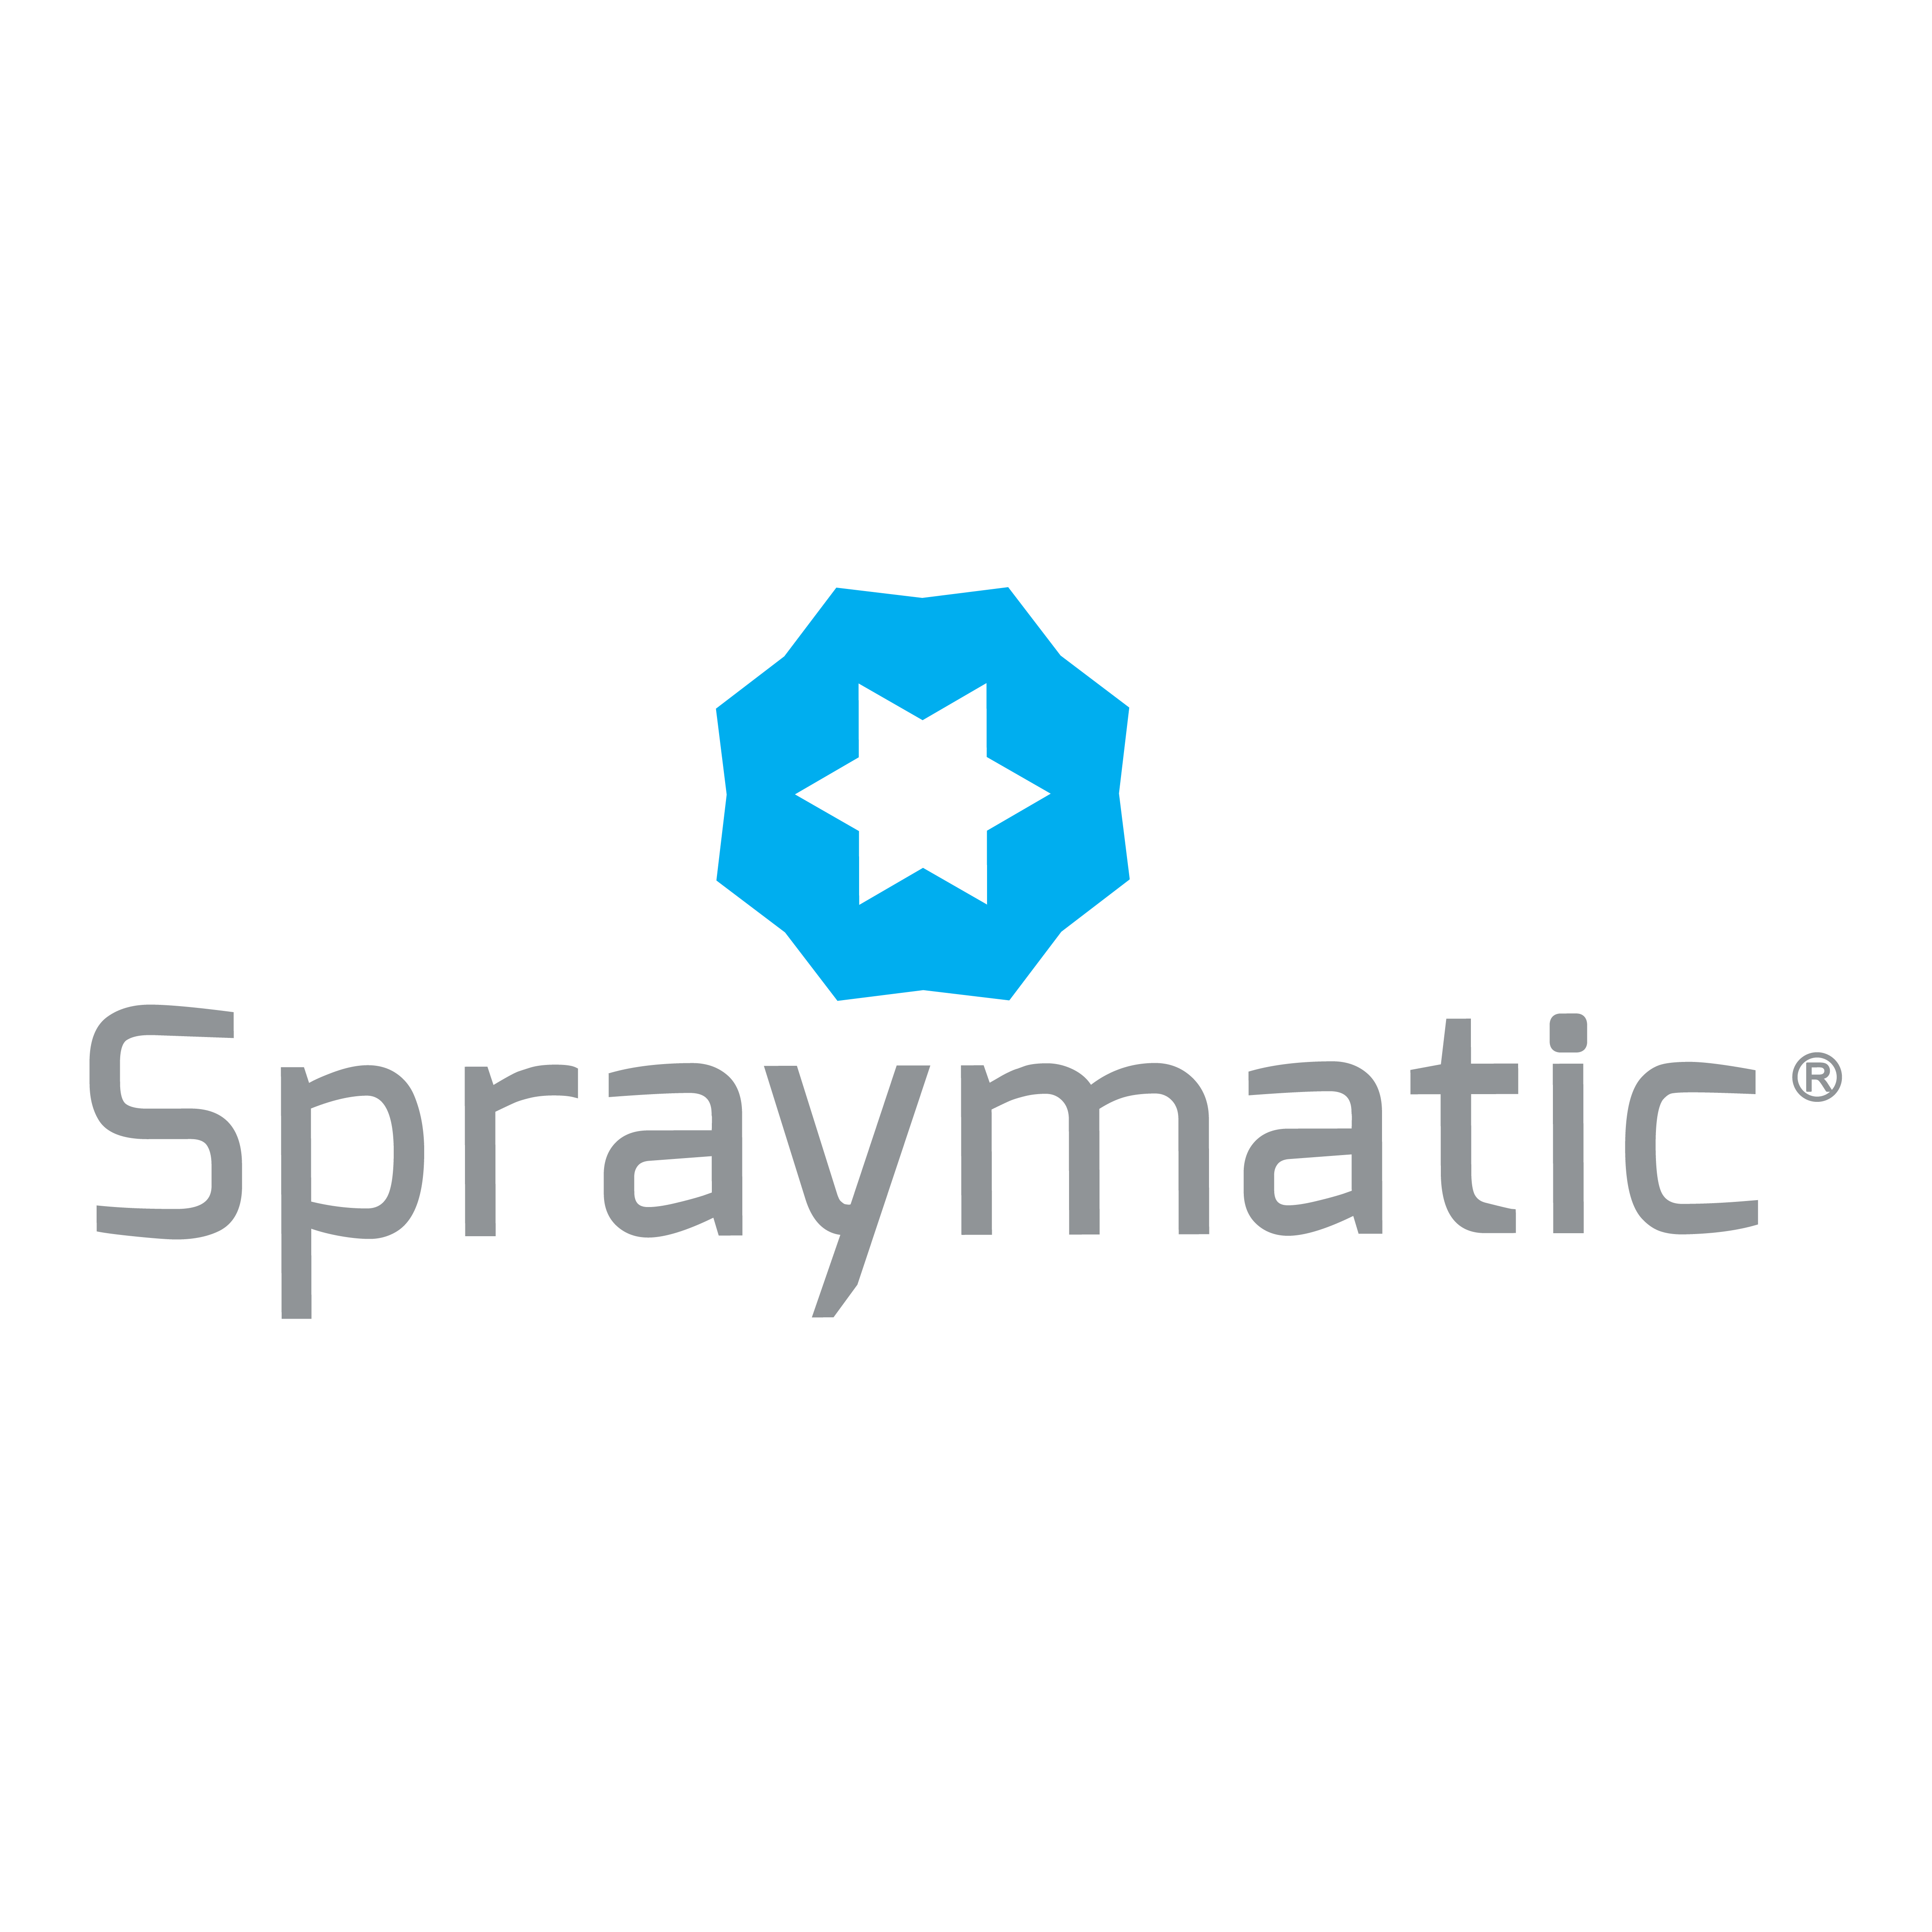 Spraymatic